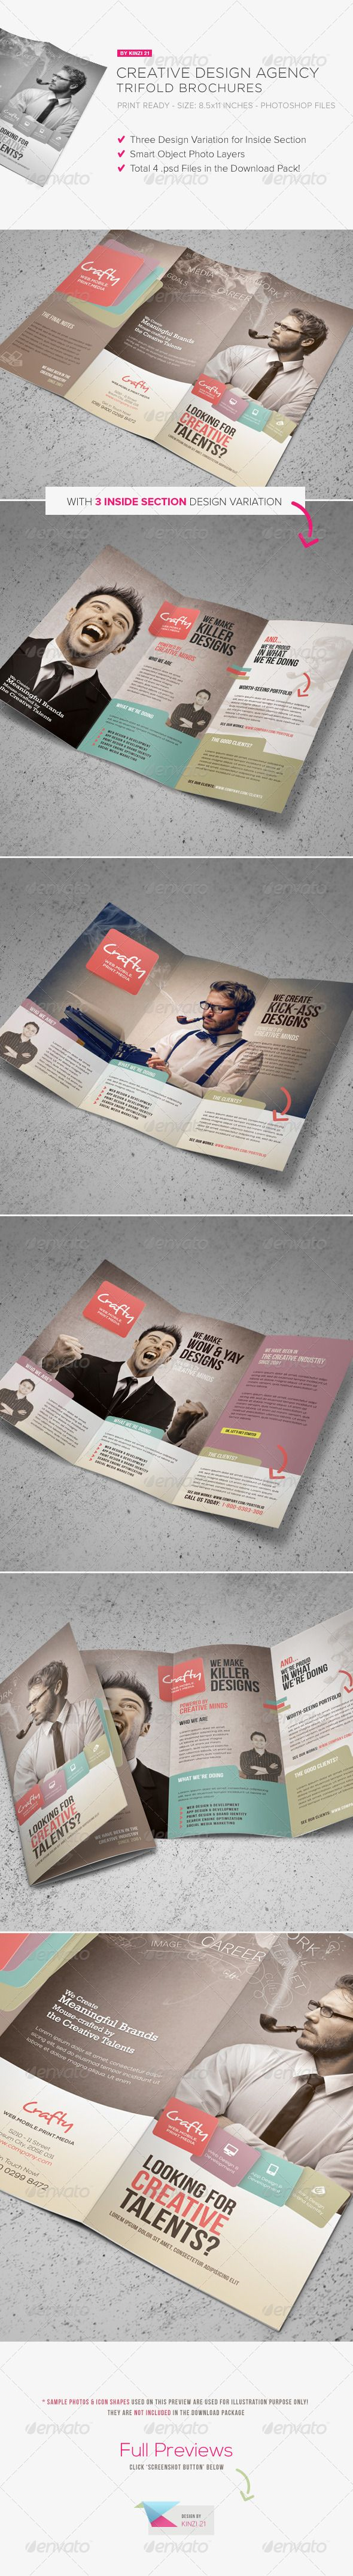 Creative Design Agency Trifold Brochure is design template created for sale on Graphic River. More info of  the template and how to get the template sourcefiles can be found on this page,  http://graphicriver.net/item/creative-design-agency-trifold-brochure/5743041?r=kinzi21